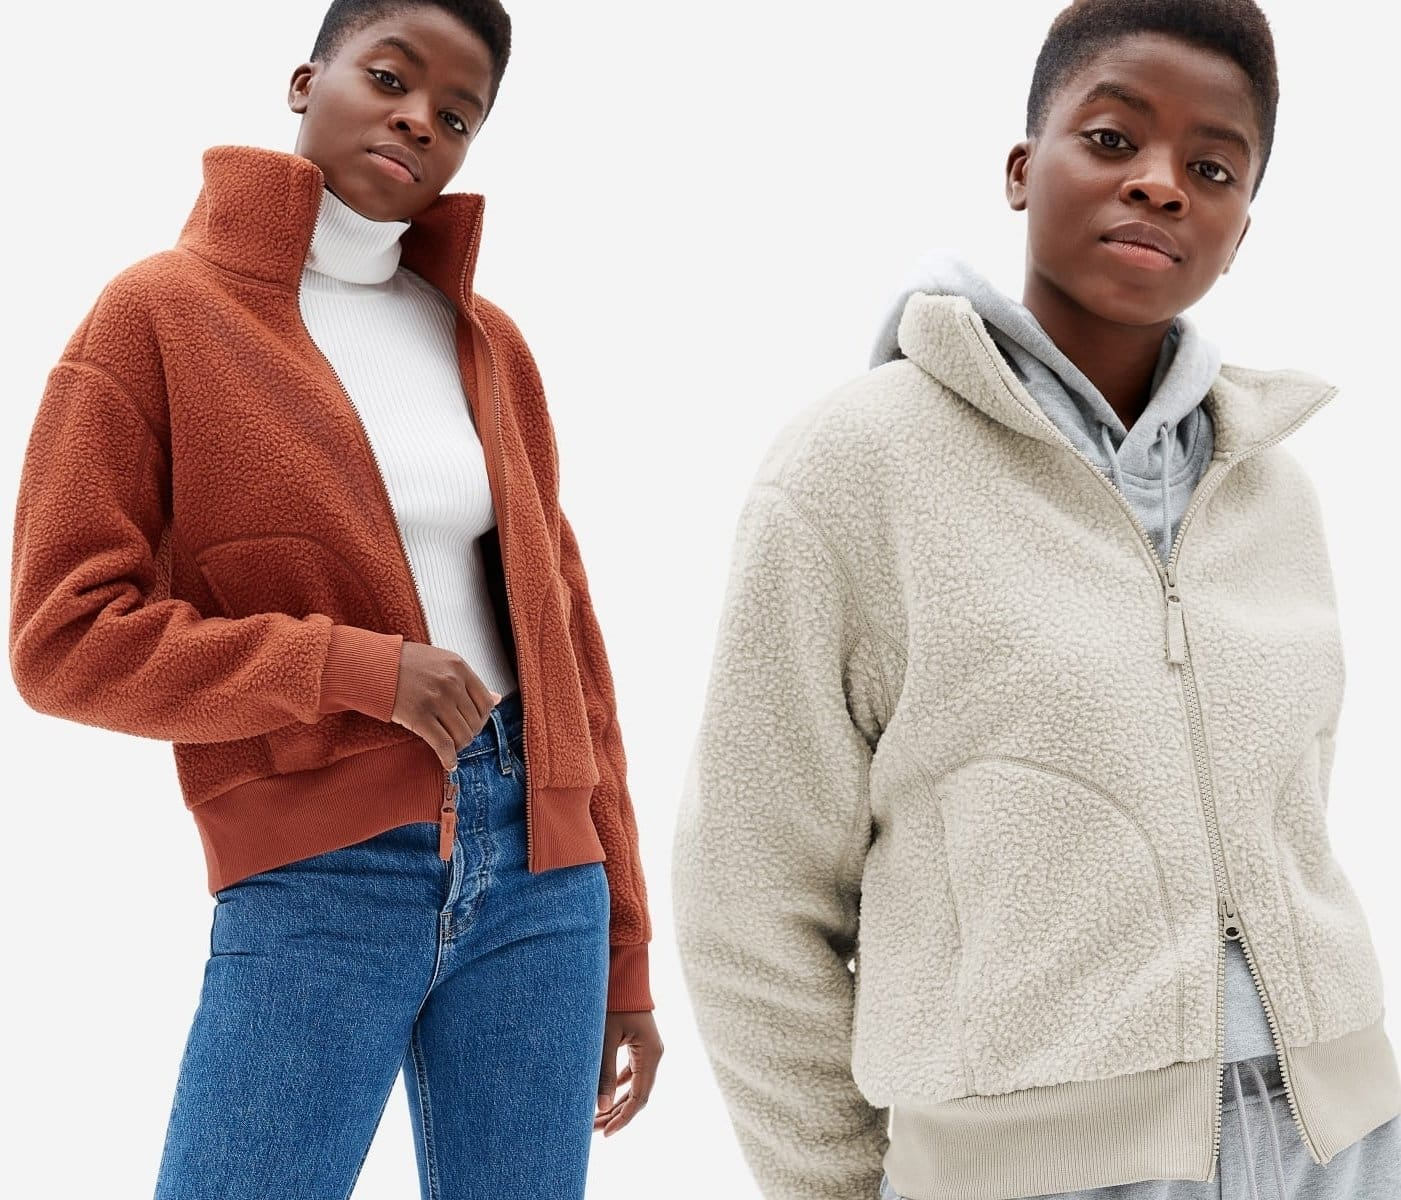 This fleece fabric bomber jacket features a relaxed cropped fit, a wide collar, and two side pockets